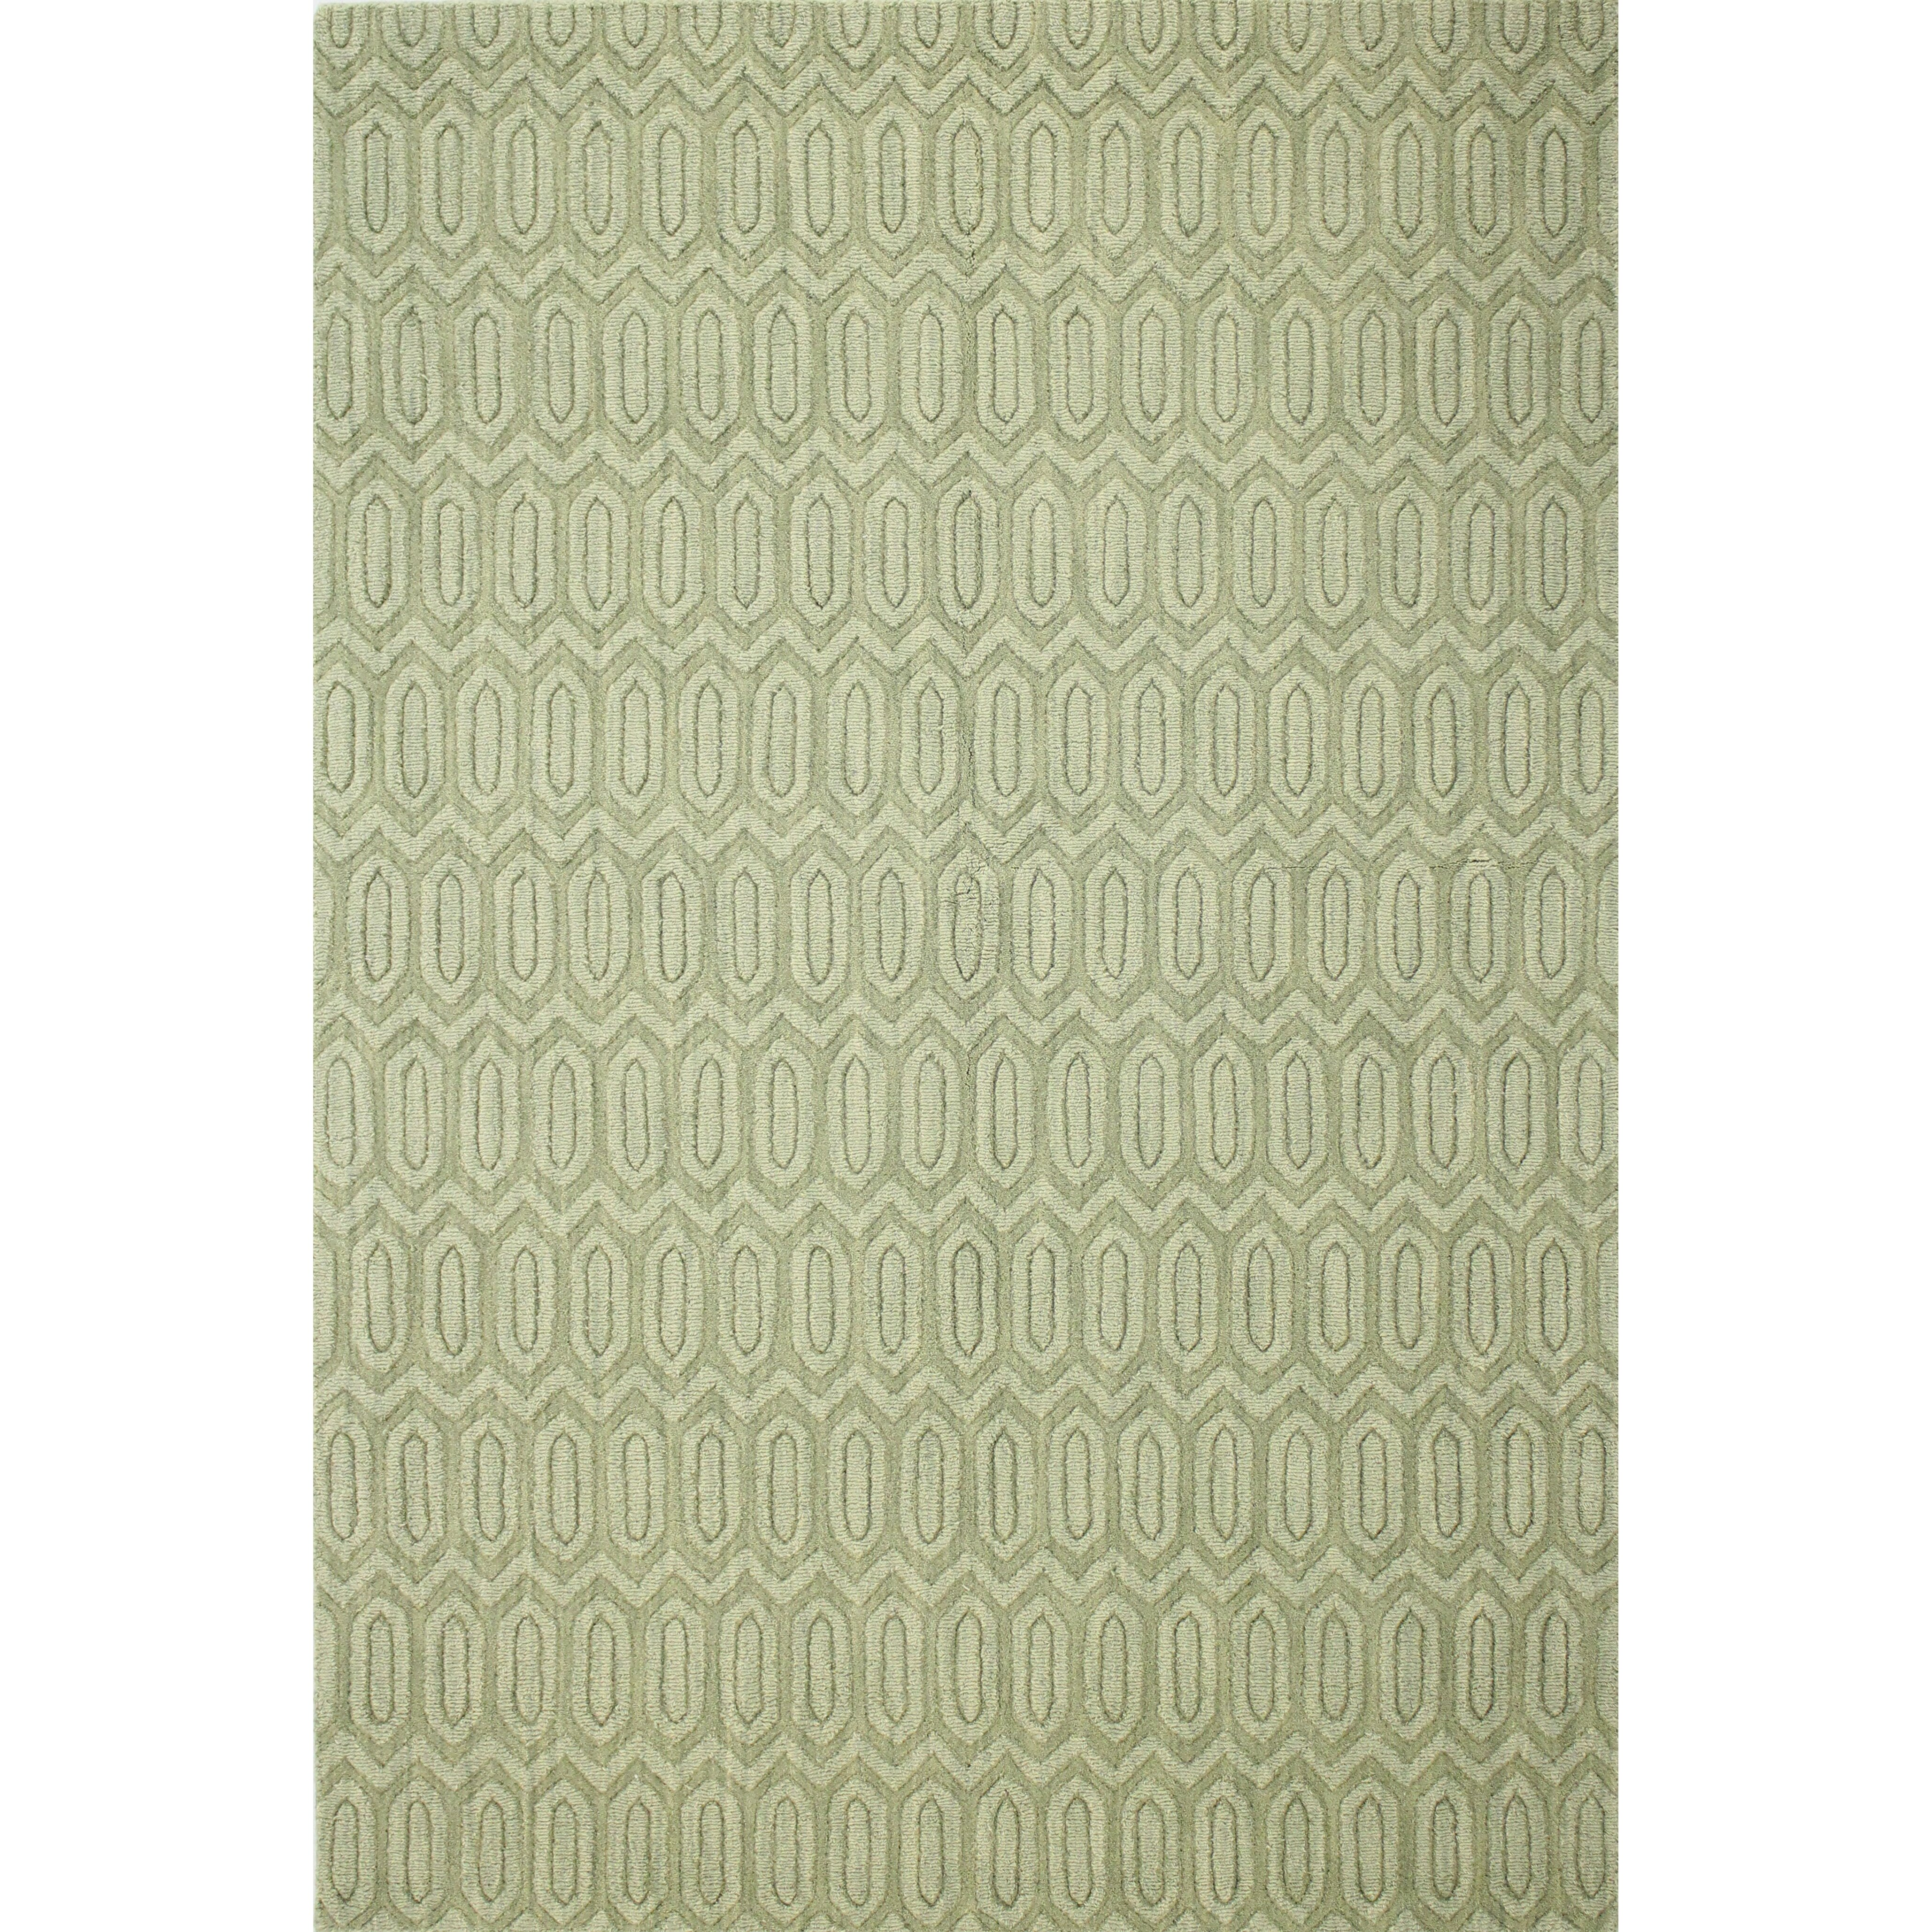 Light Colored Area Rugs Rug Designs